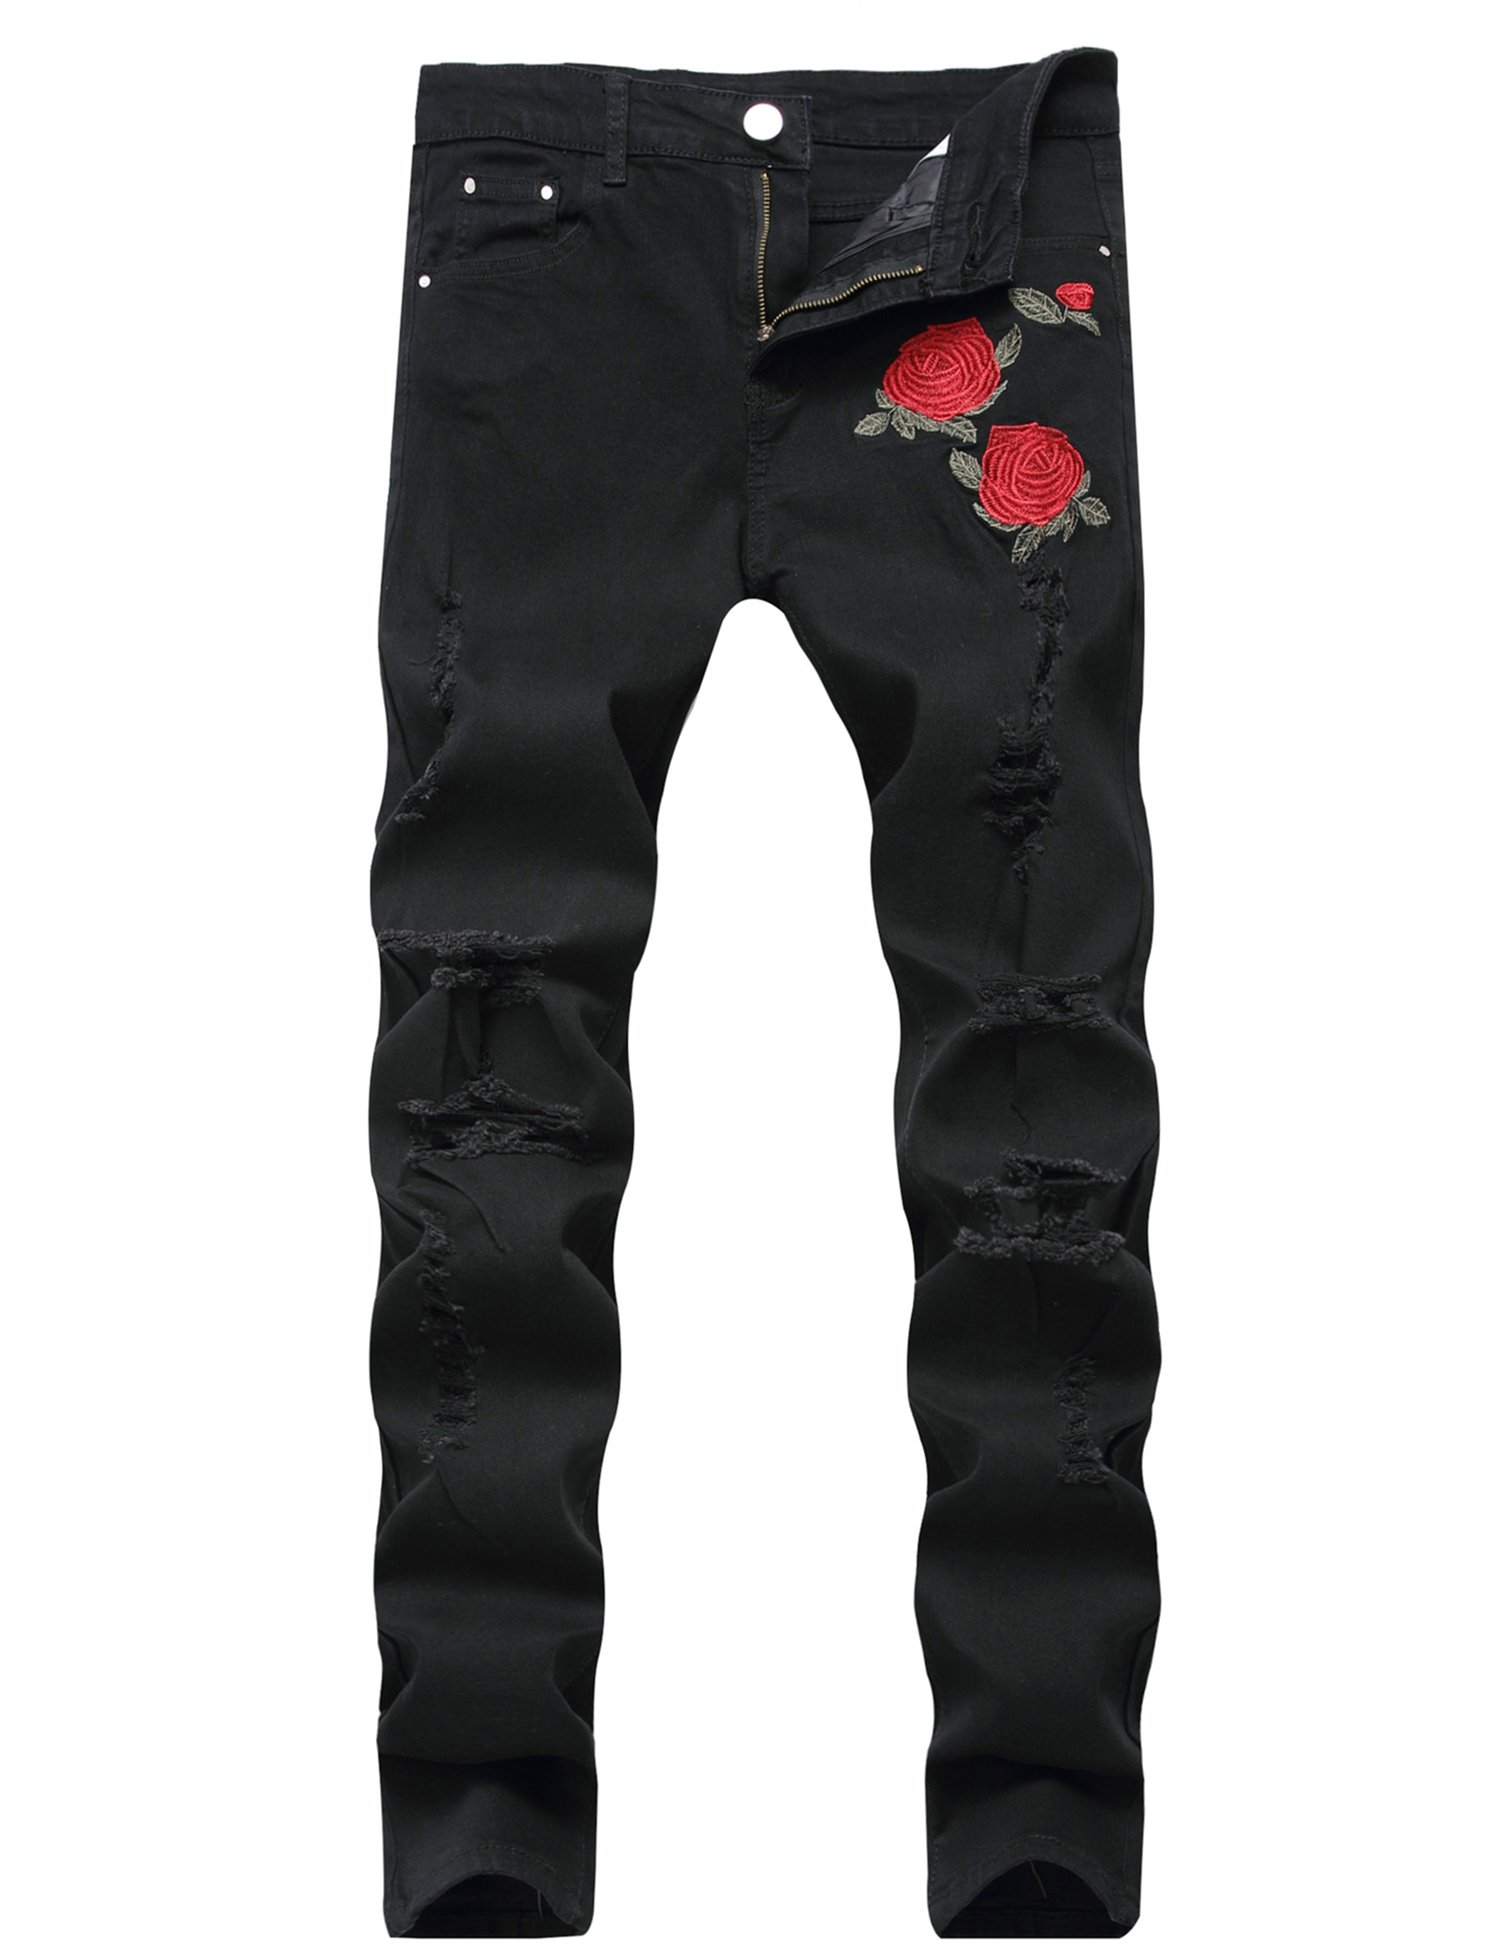 GARMOY Men's Fashion Light Blue Ripped Destroyed Flower Embroidered Skinny Fit Jeans Black 32